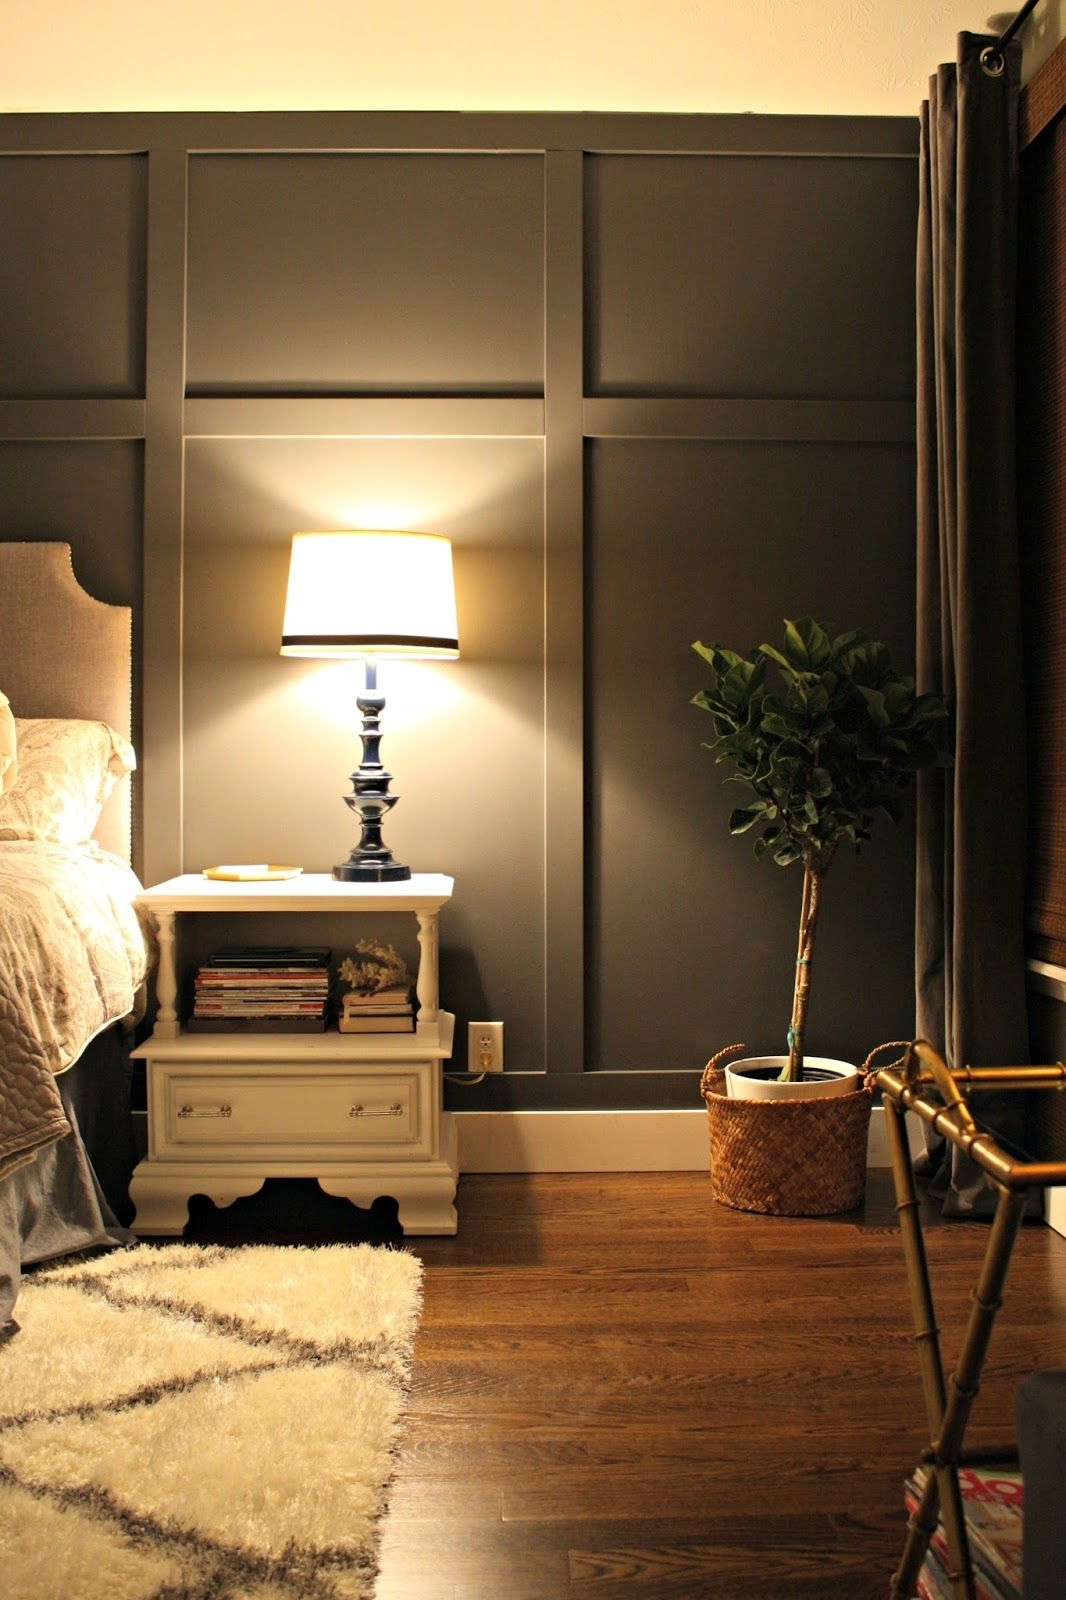 Bedroom Design: Accent Wall Panels Accent Wall Ideas For Small With Regard To Most Recent Wood Wall Accents (View 14 of 15)